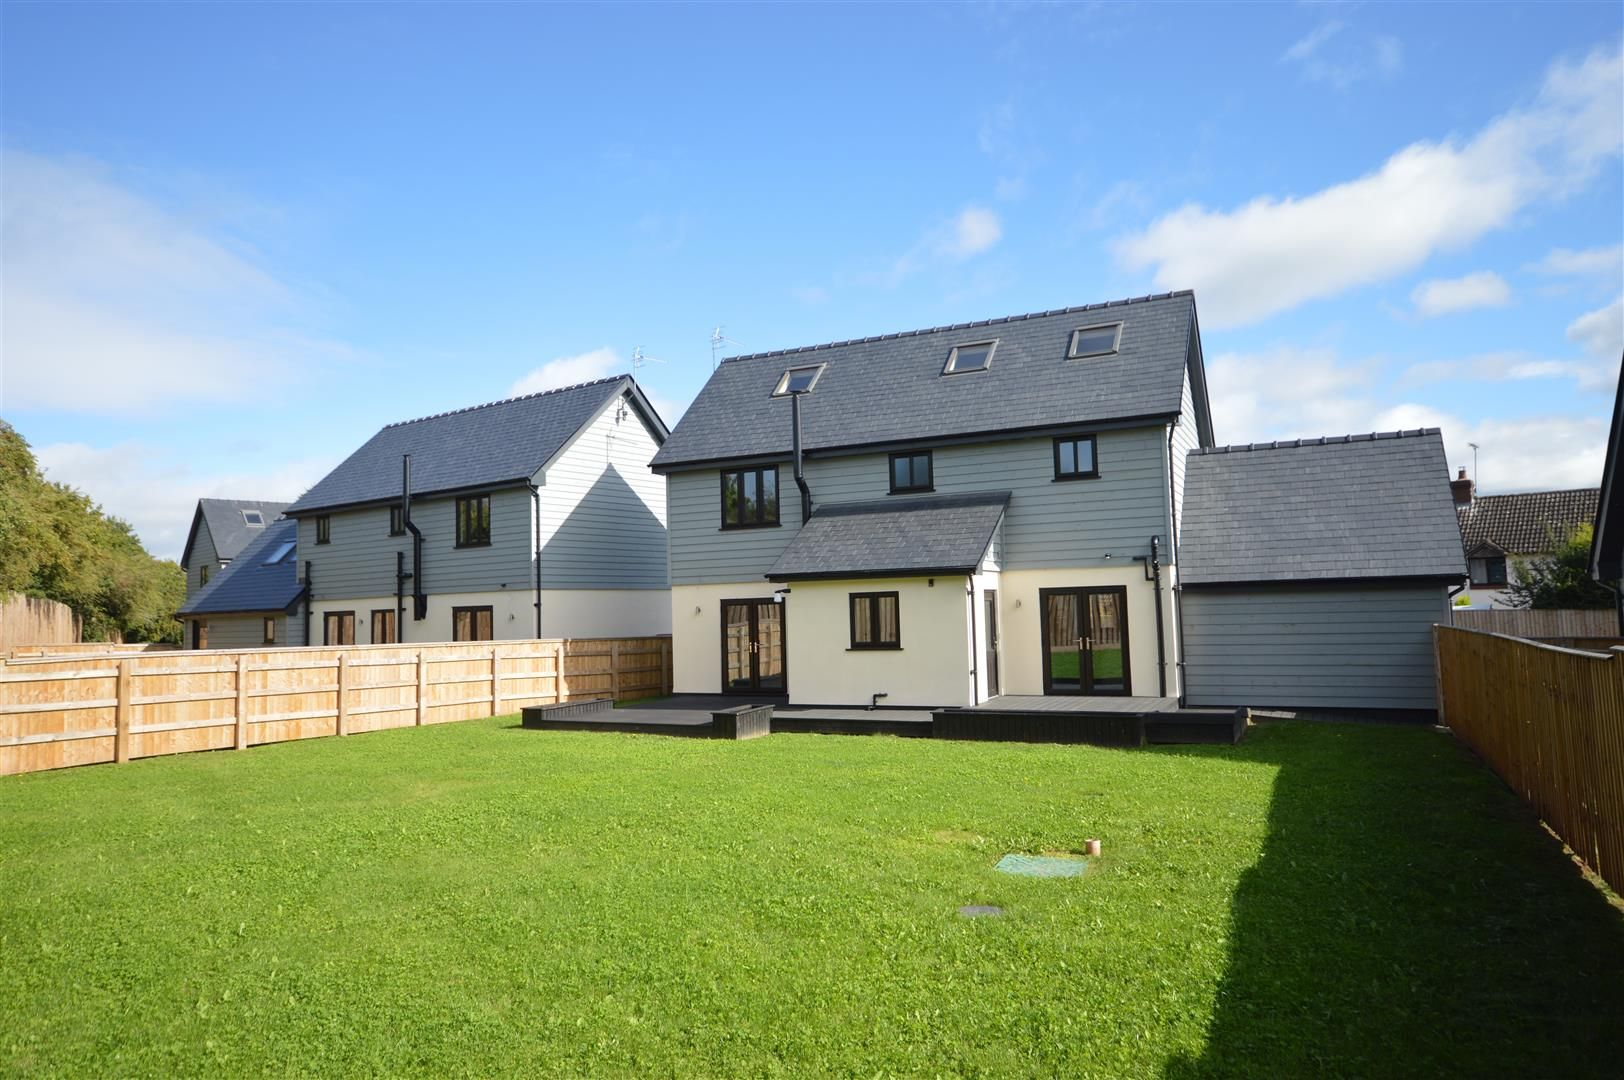 4 bed detached for sale in Brimfield 2